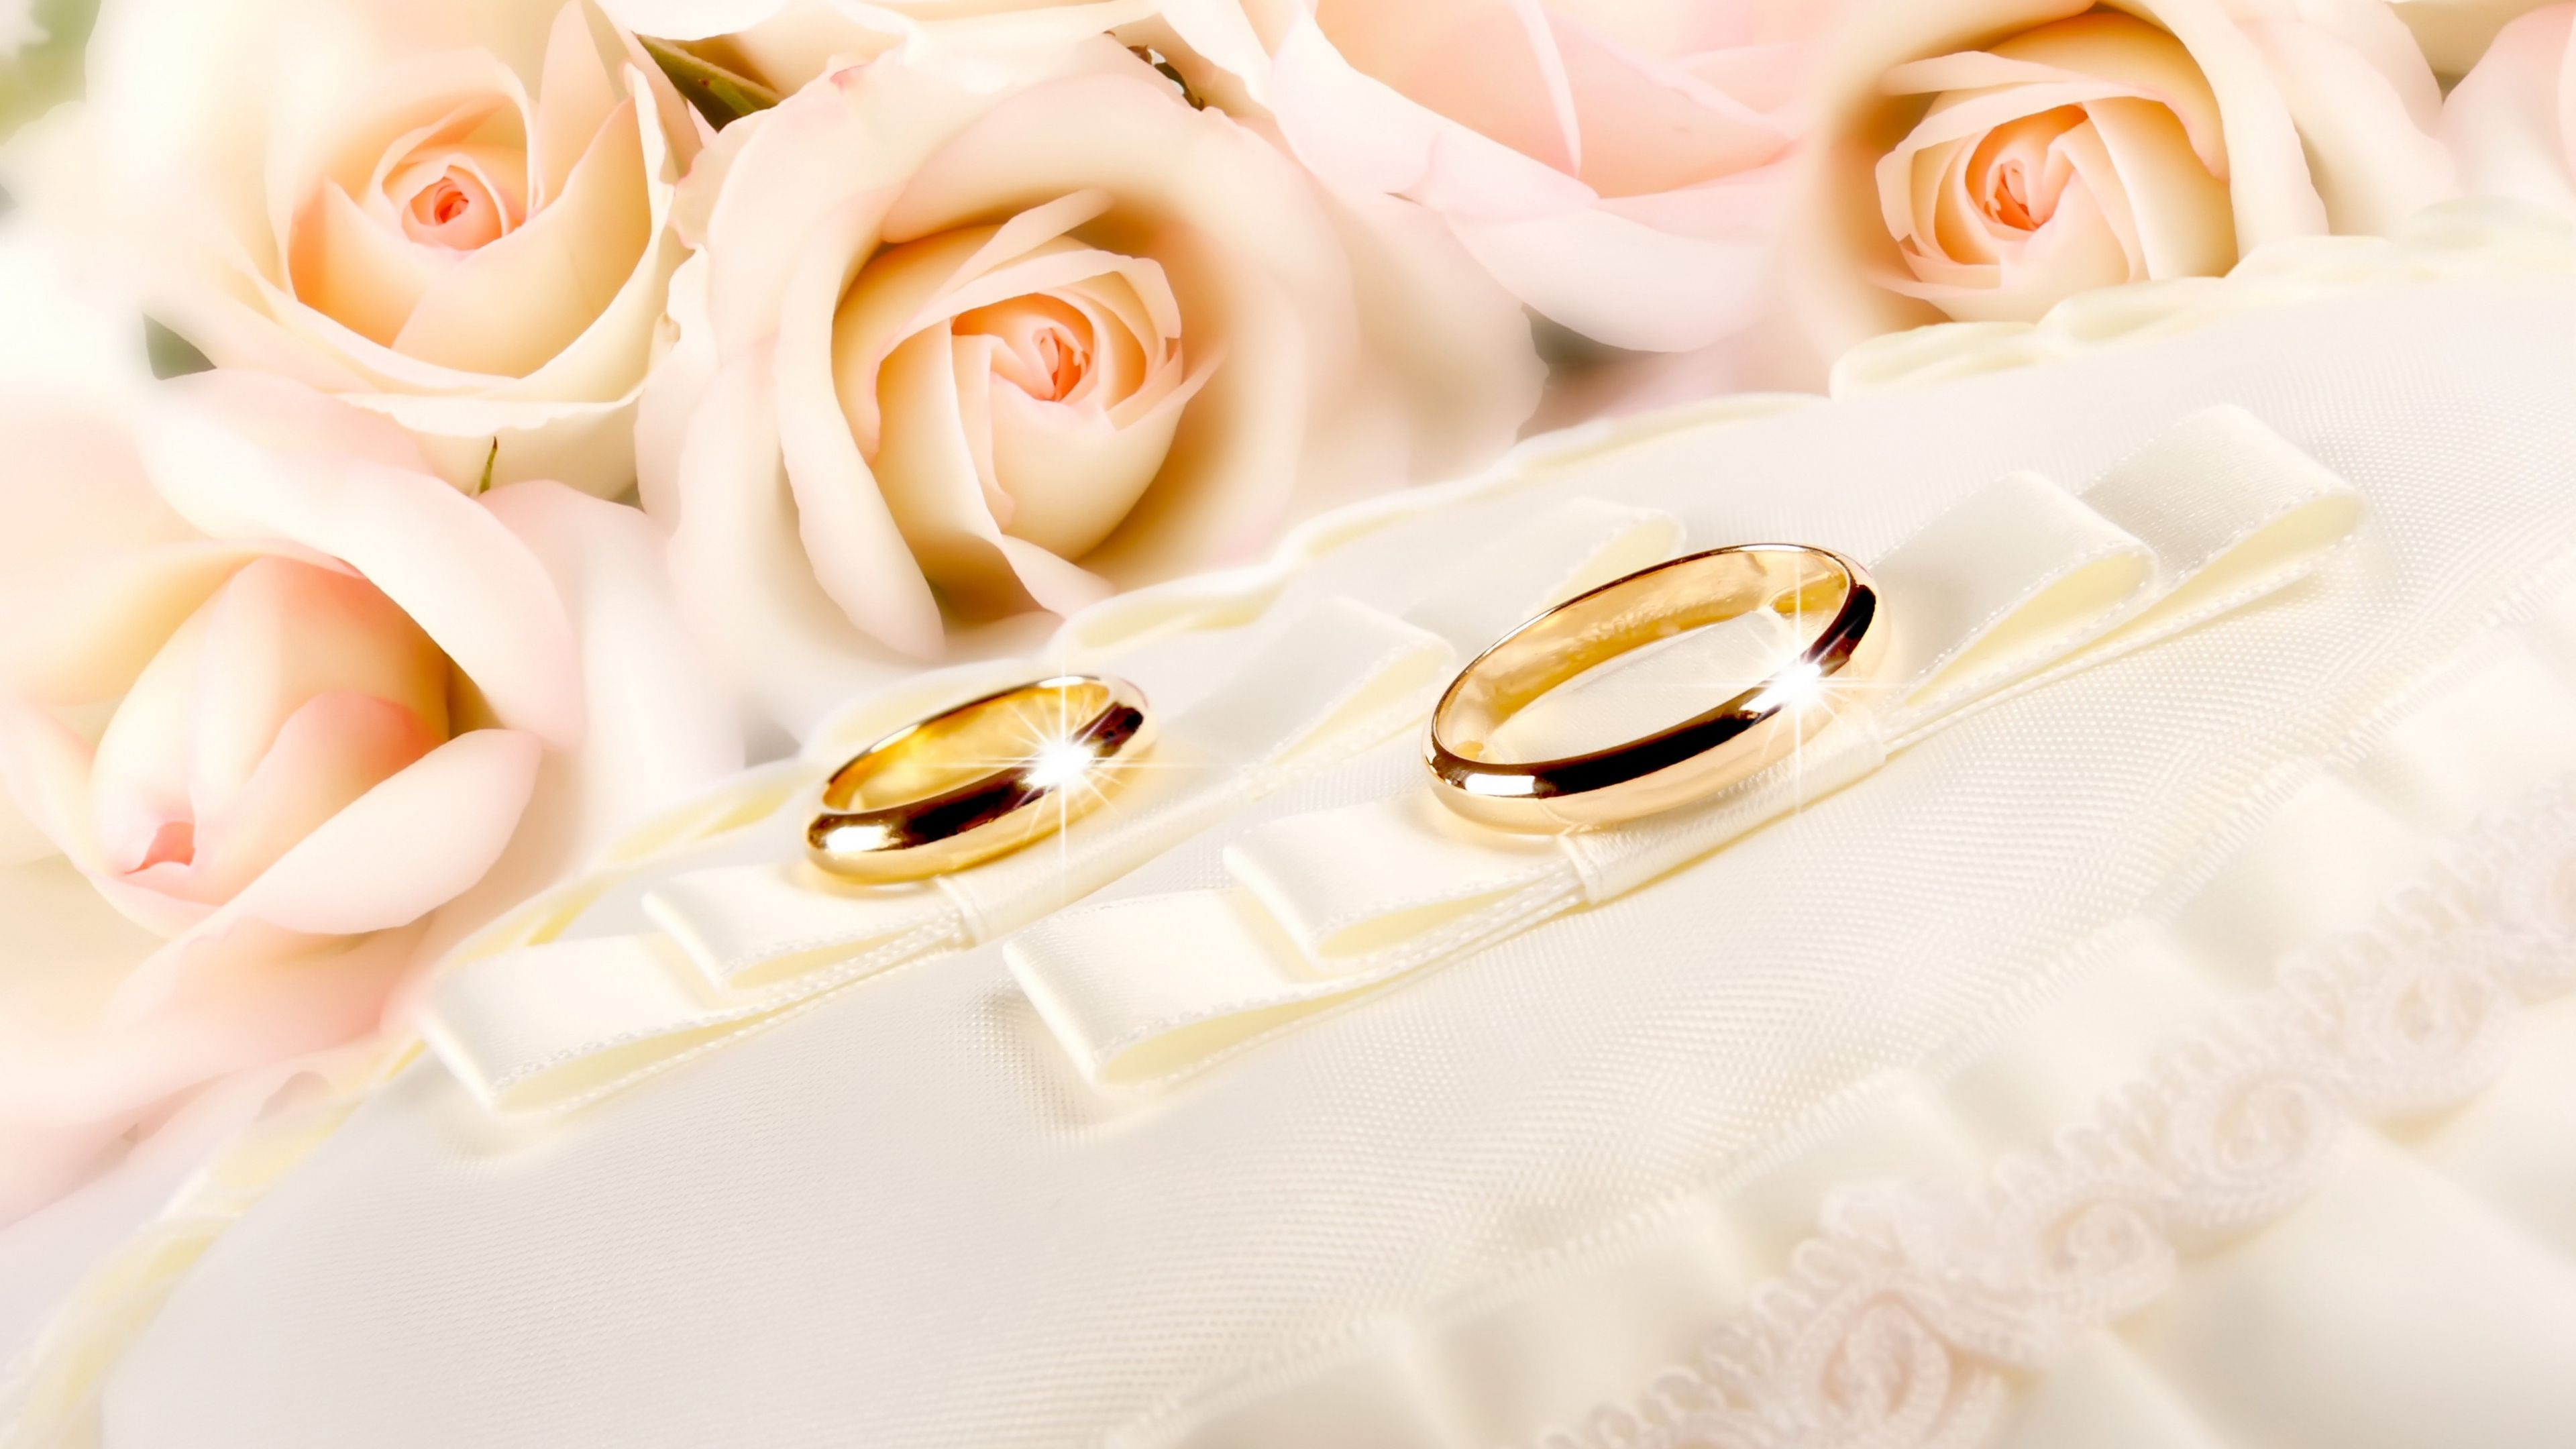 3840x2160 rings wedding gold glitter fabric flower rose backgrounds |